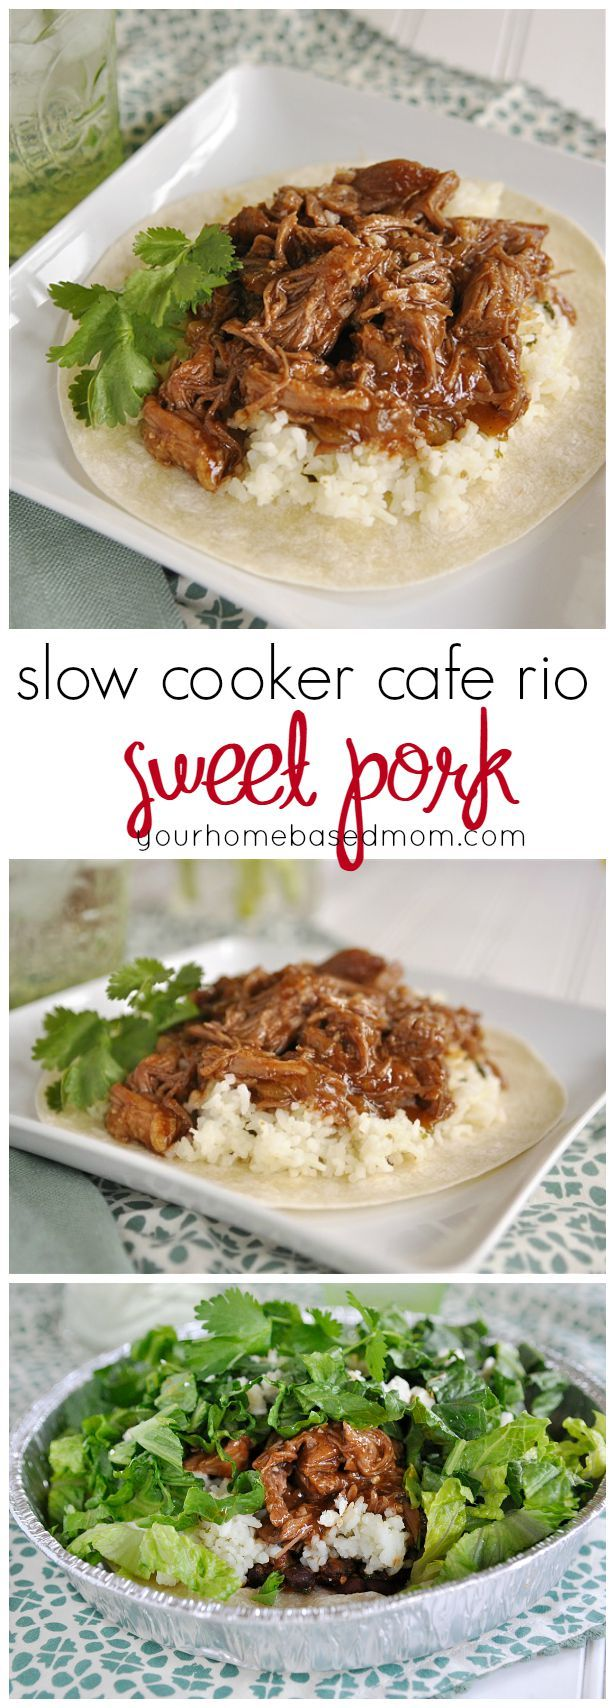 slow cooker cafe rio sweet pork is my favorite copycat recipe.  I love that I can make it at home and not have to drive all the way to Utah to enjoy it!